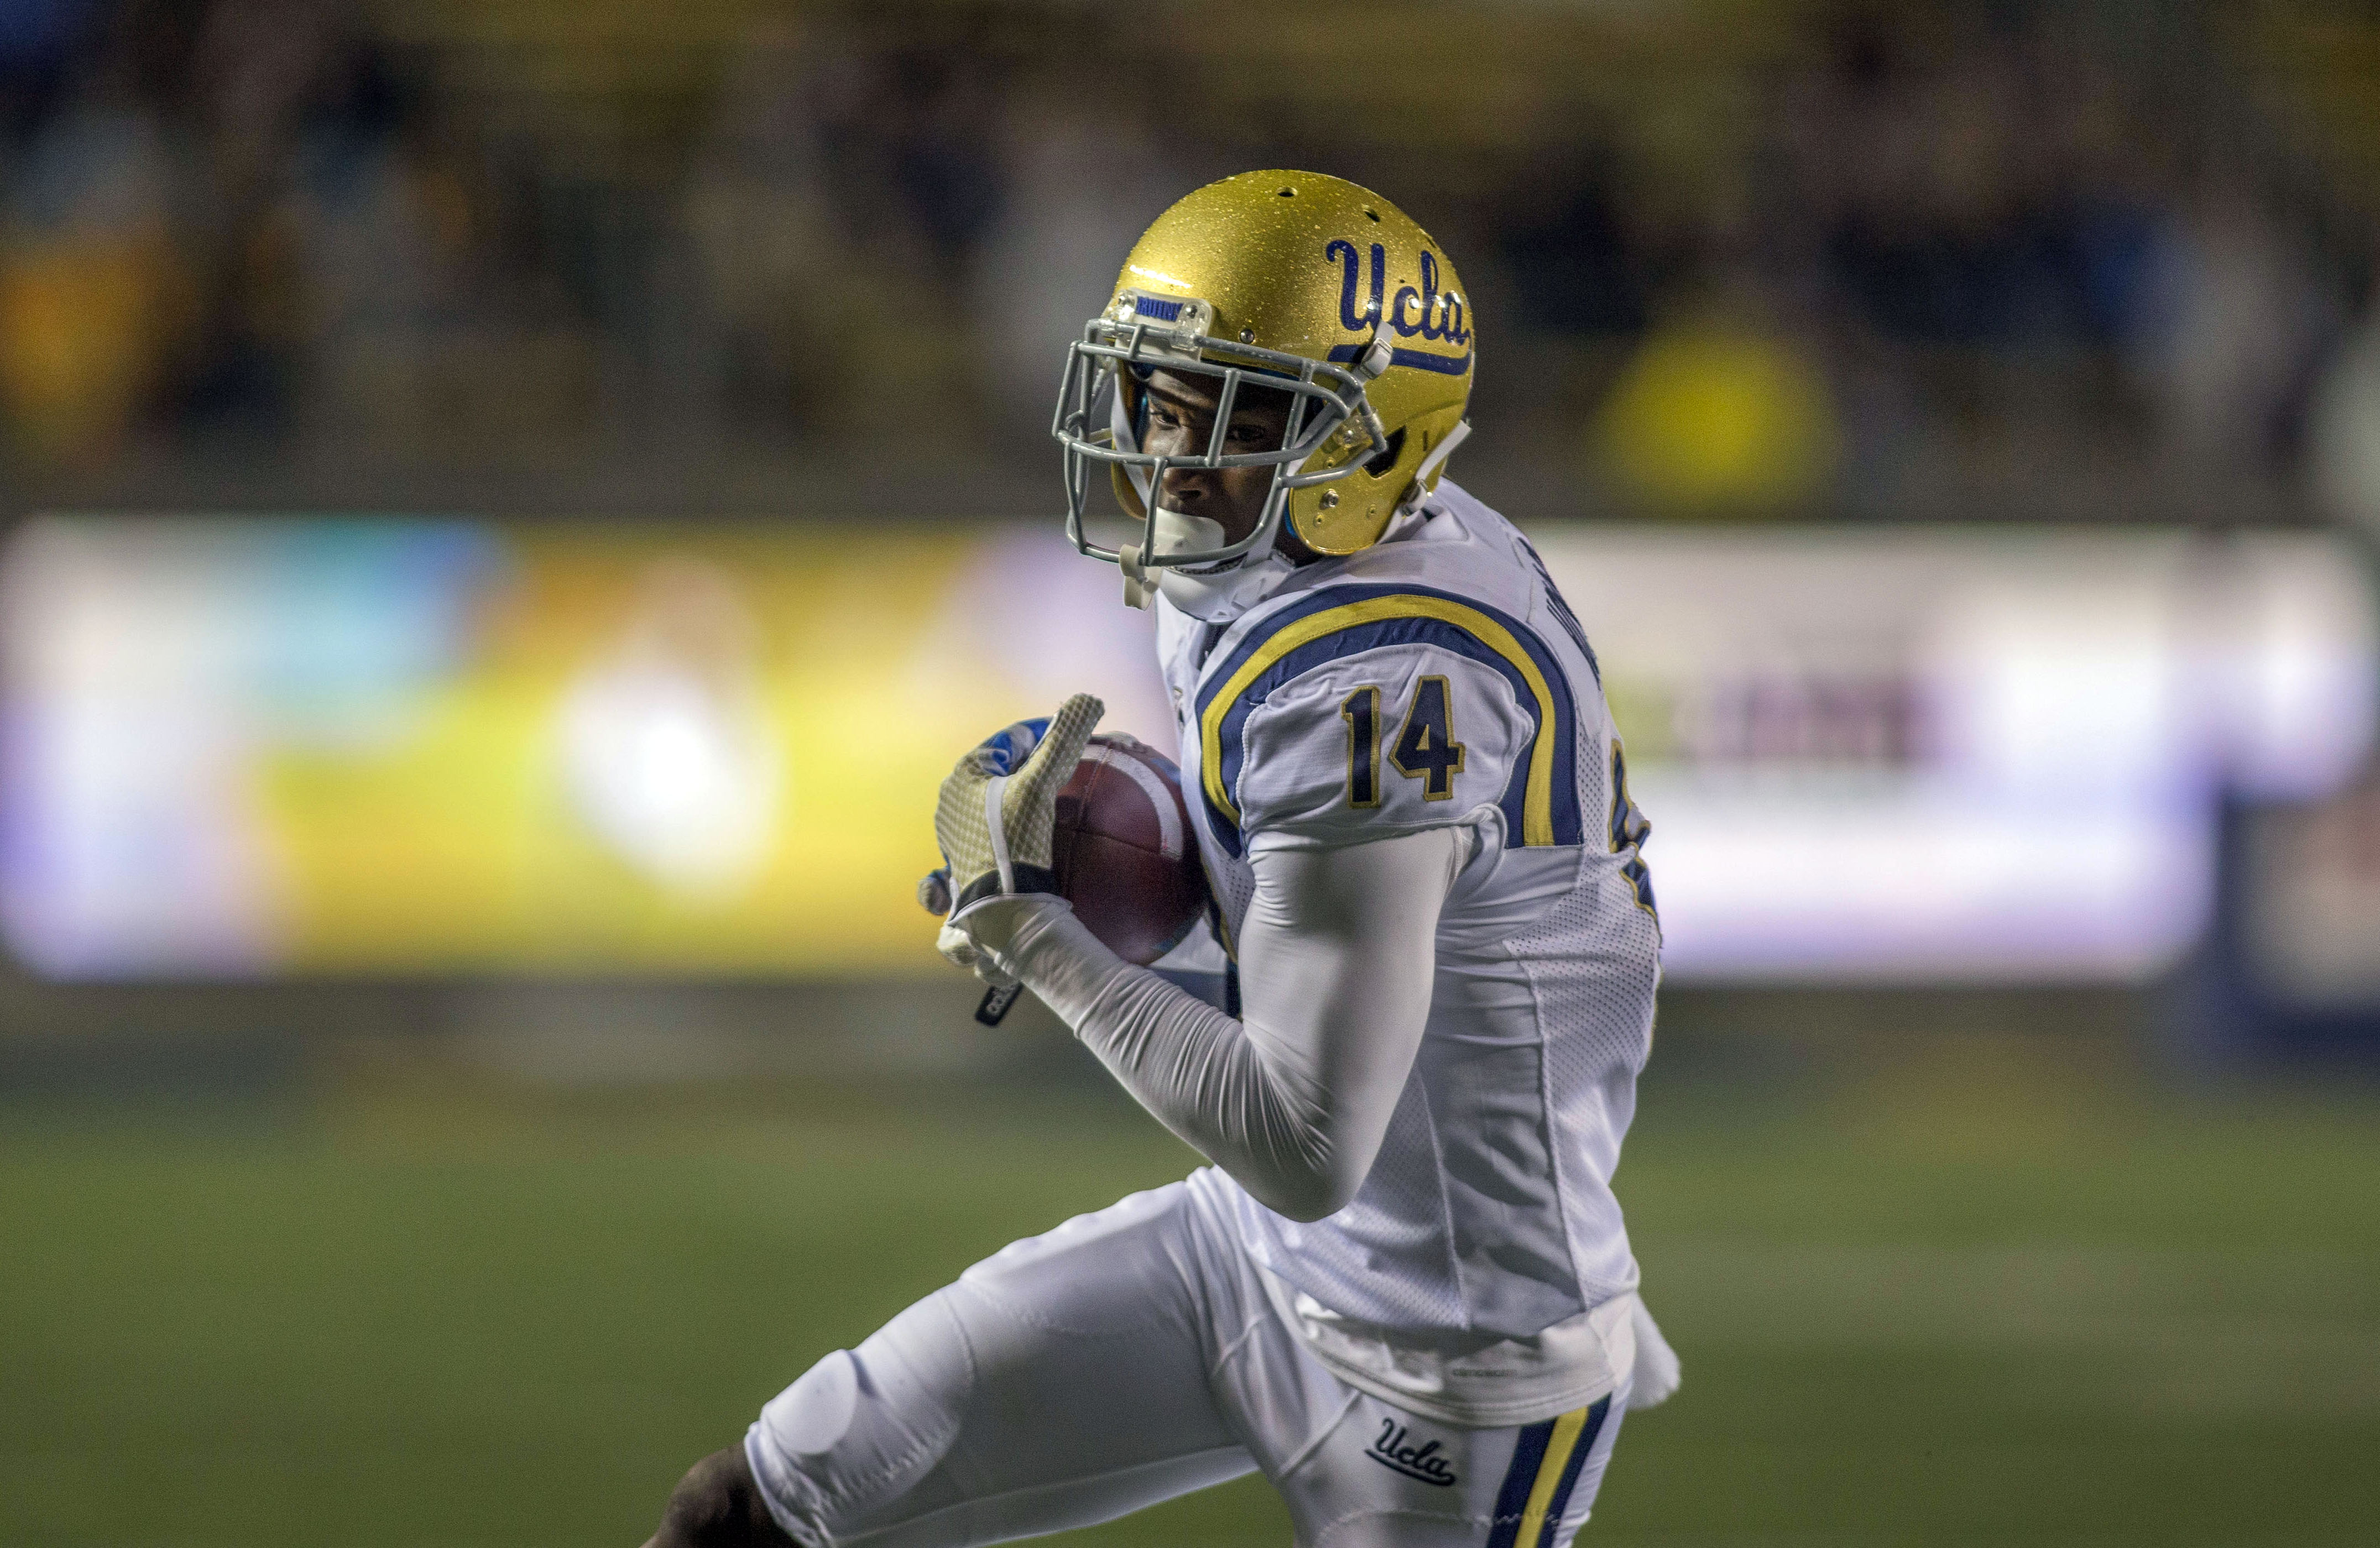 9707477-ncaa-football-ucla-at-california-1